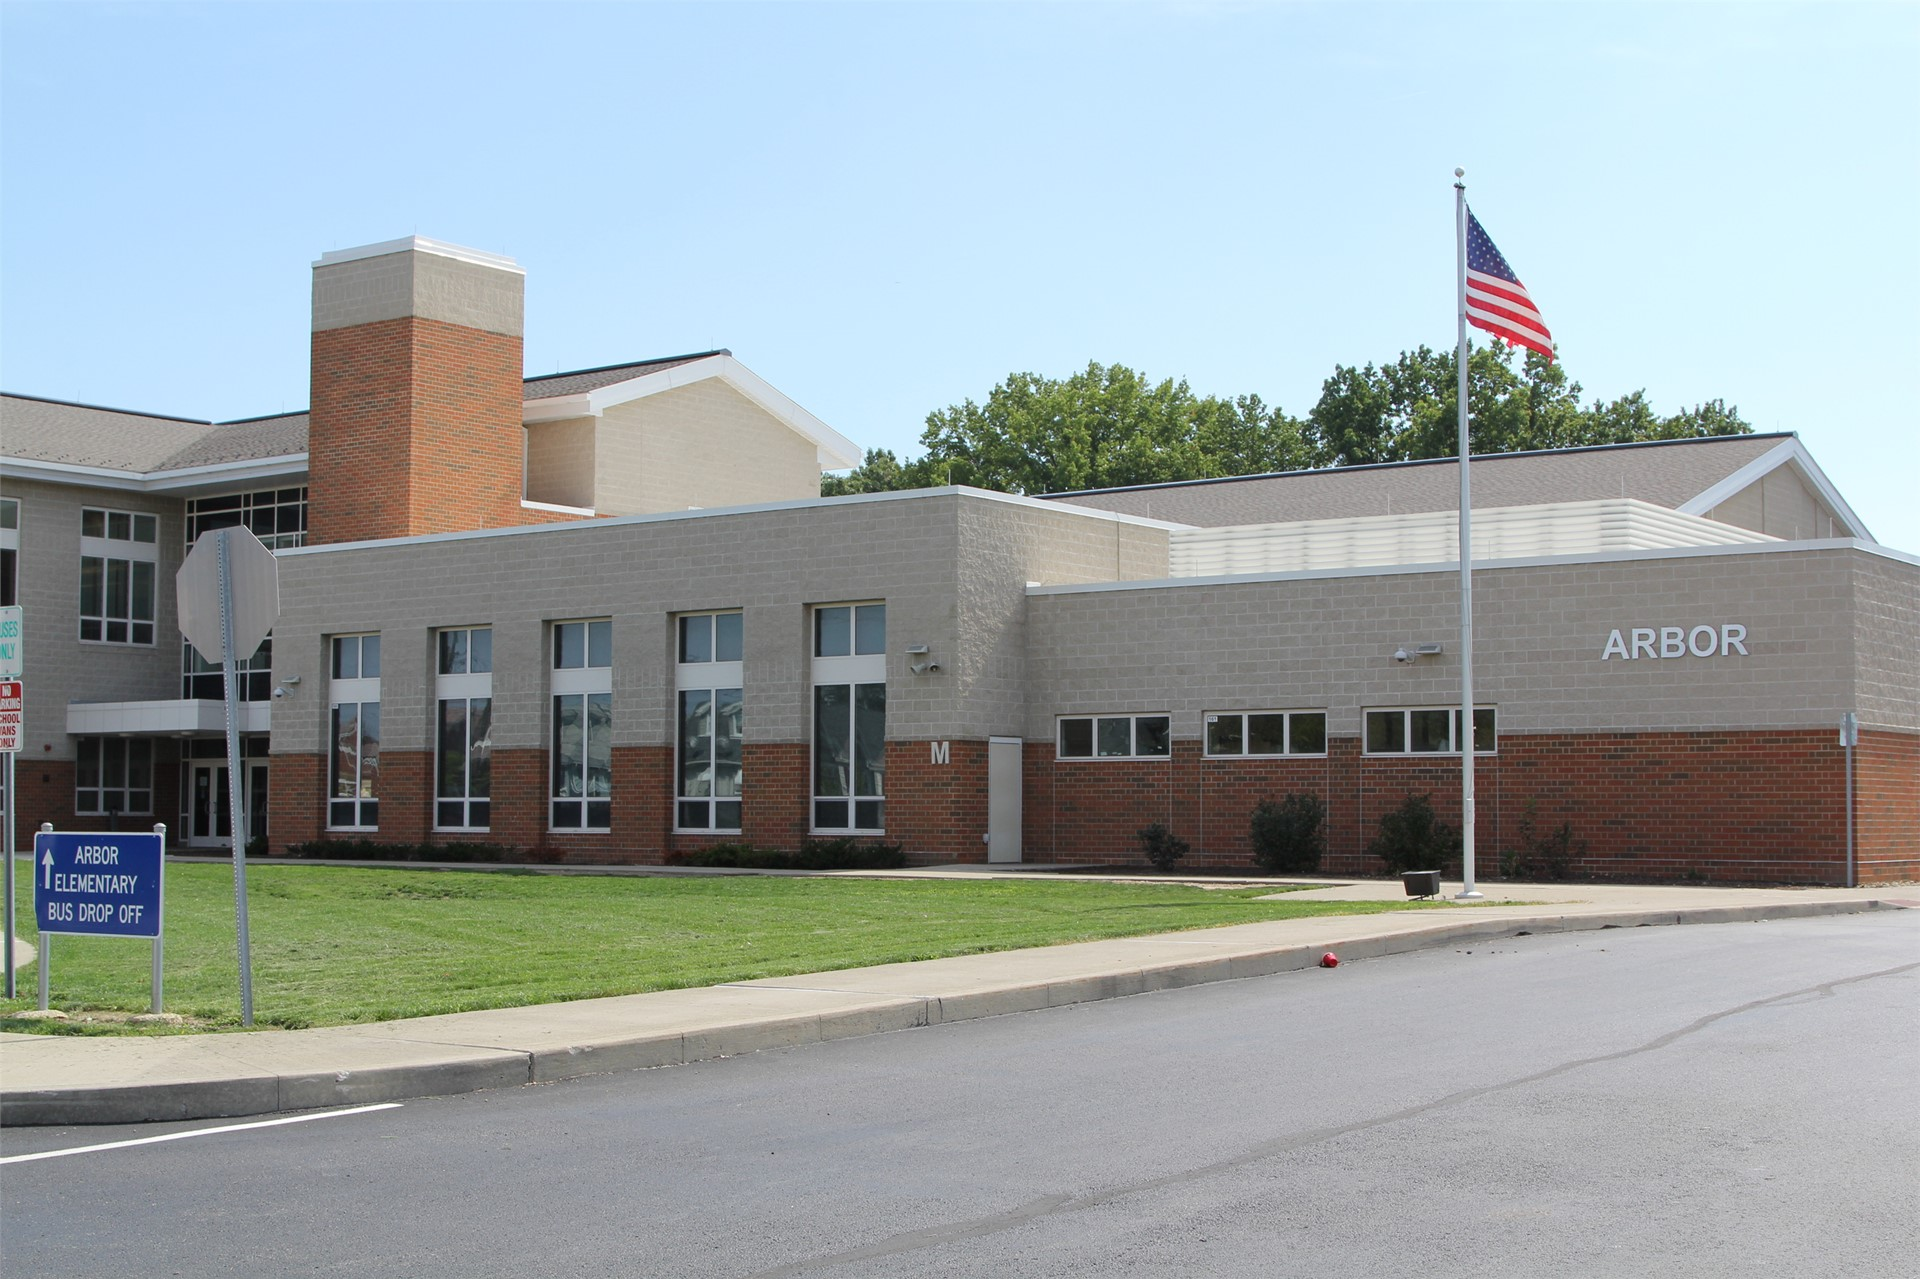 Arbor Elementary School building view